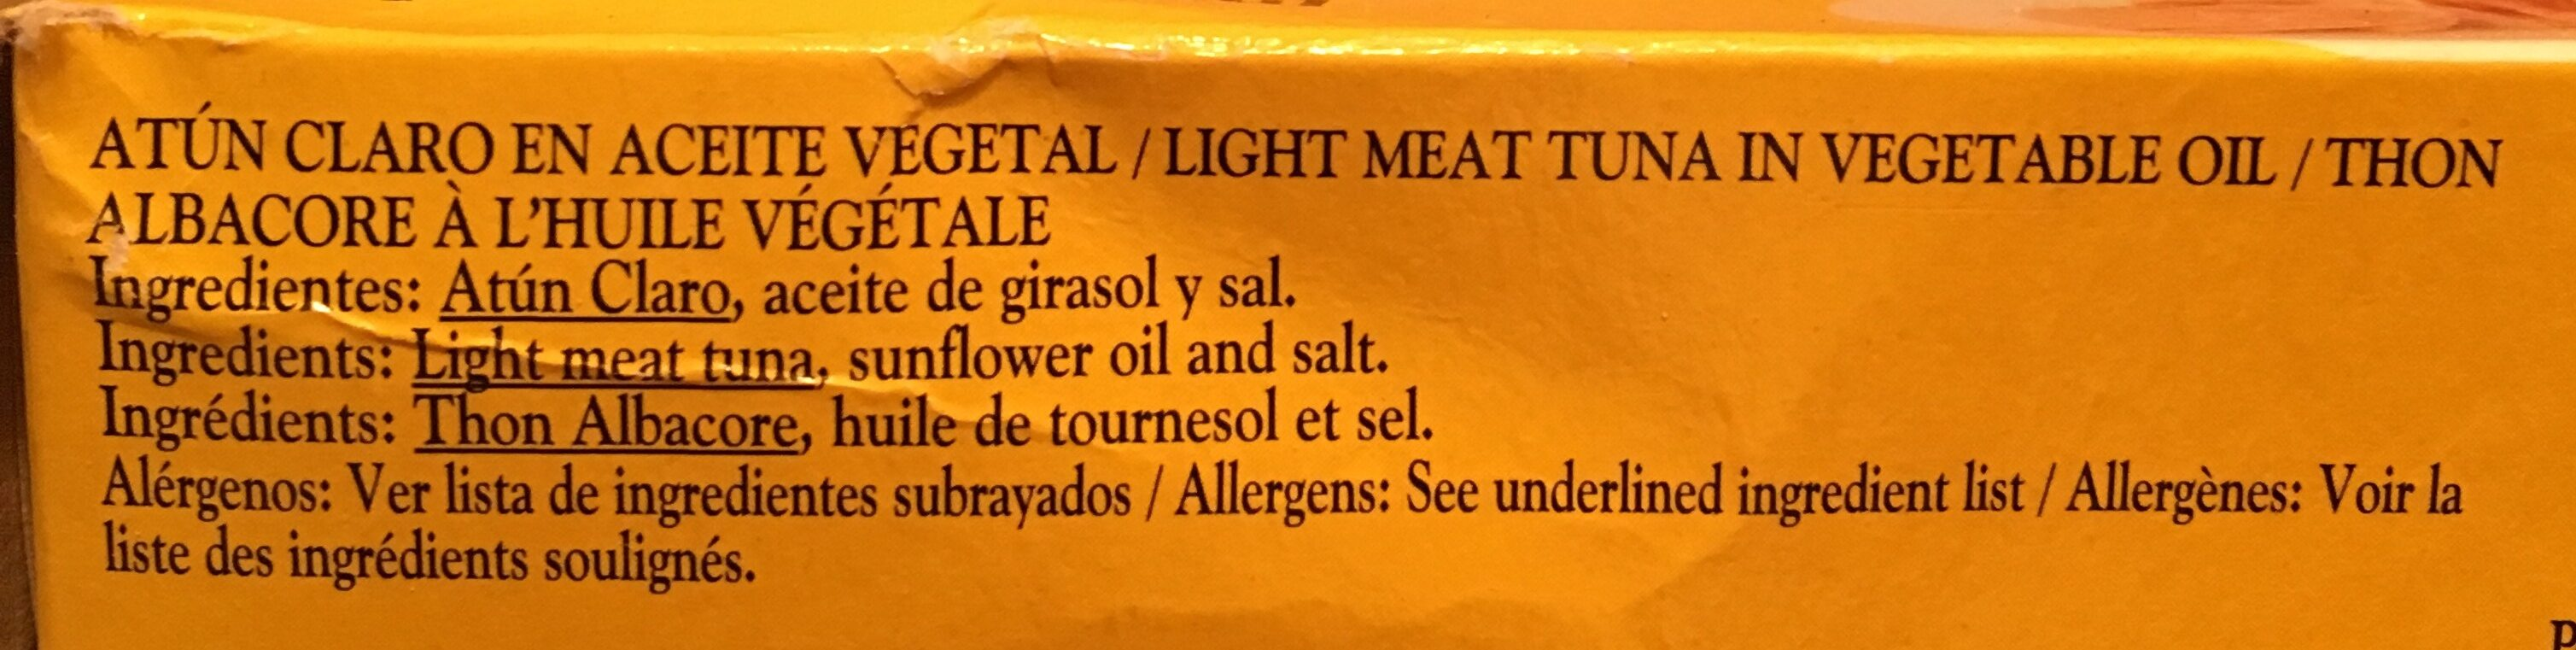 Atun Claro en Aceite Vegetal - Ingredients - es